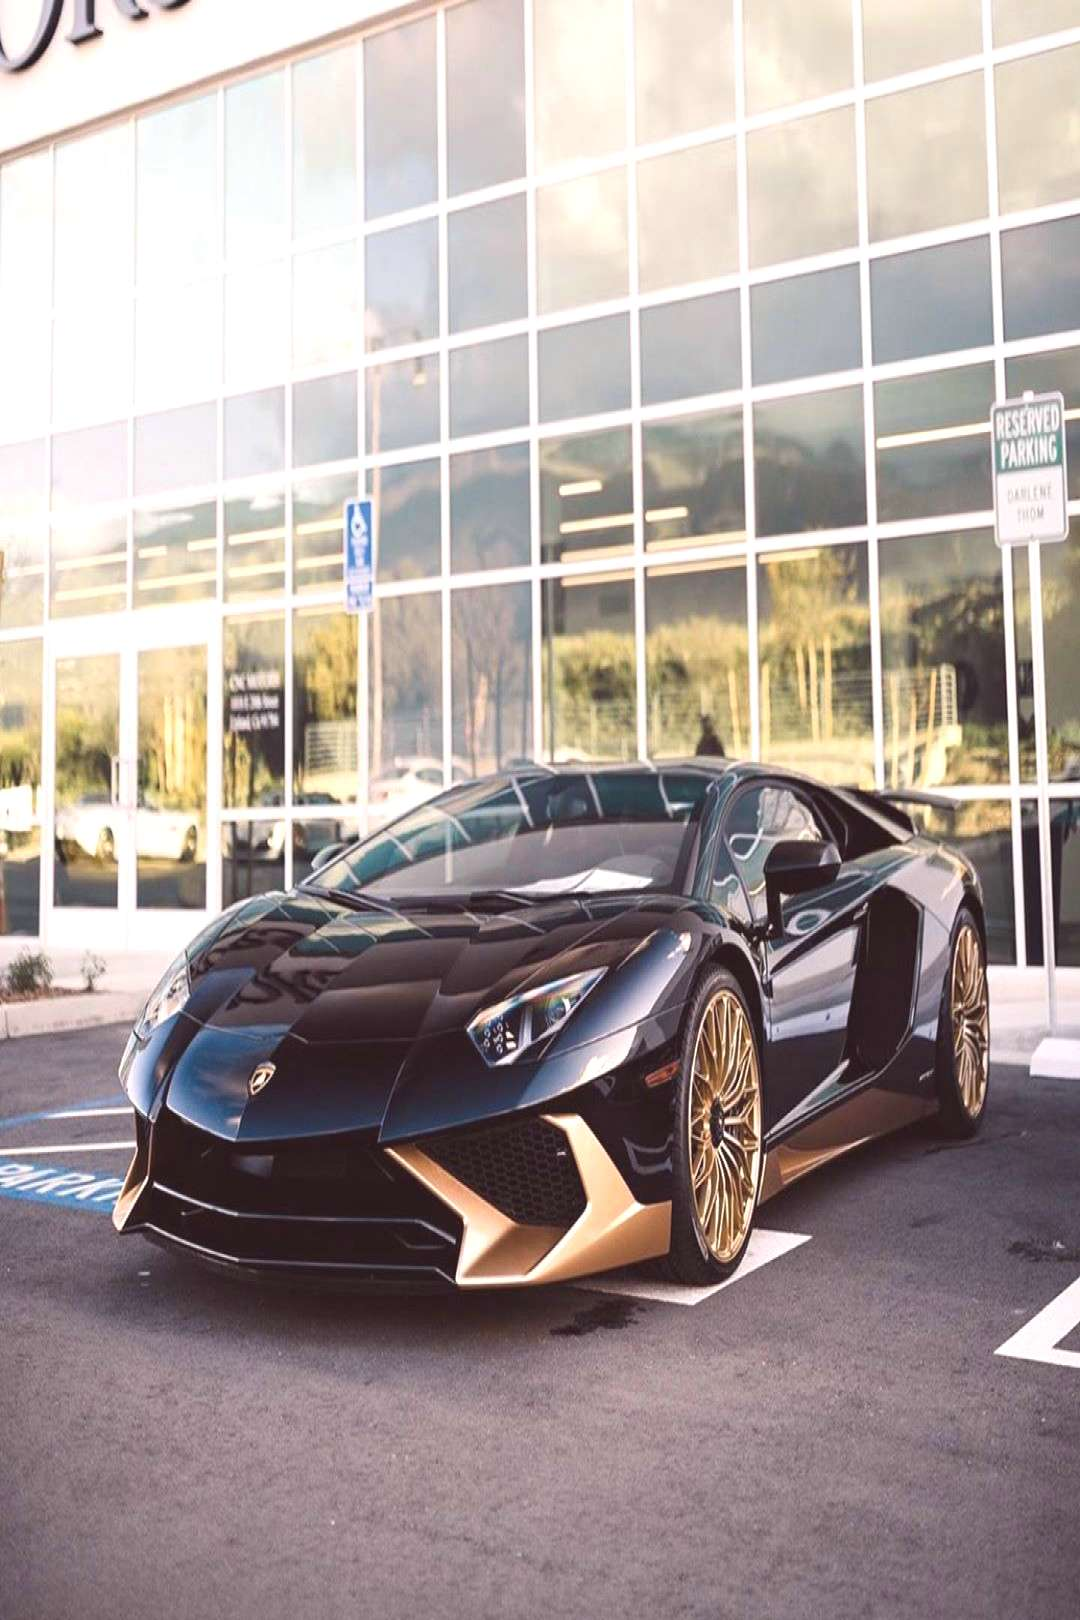 Lamborghini Reposts on April 22 2020 car and outdoor